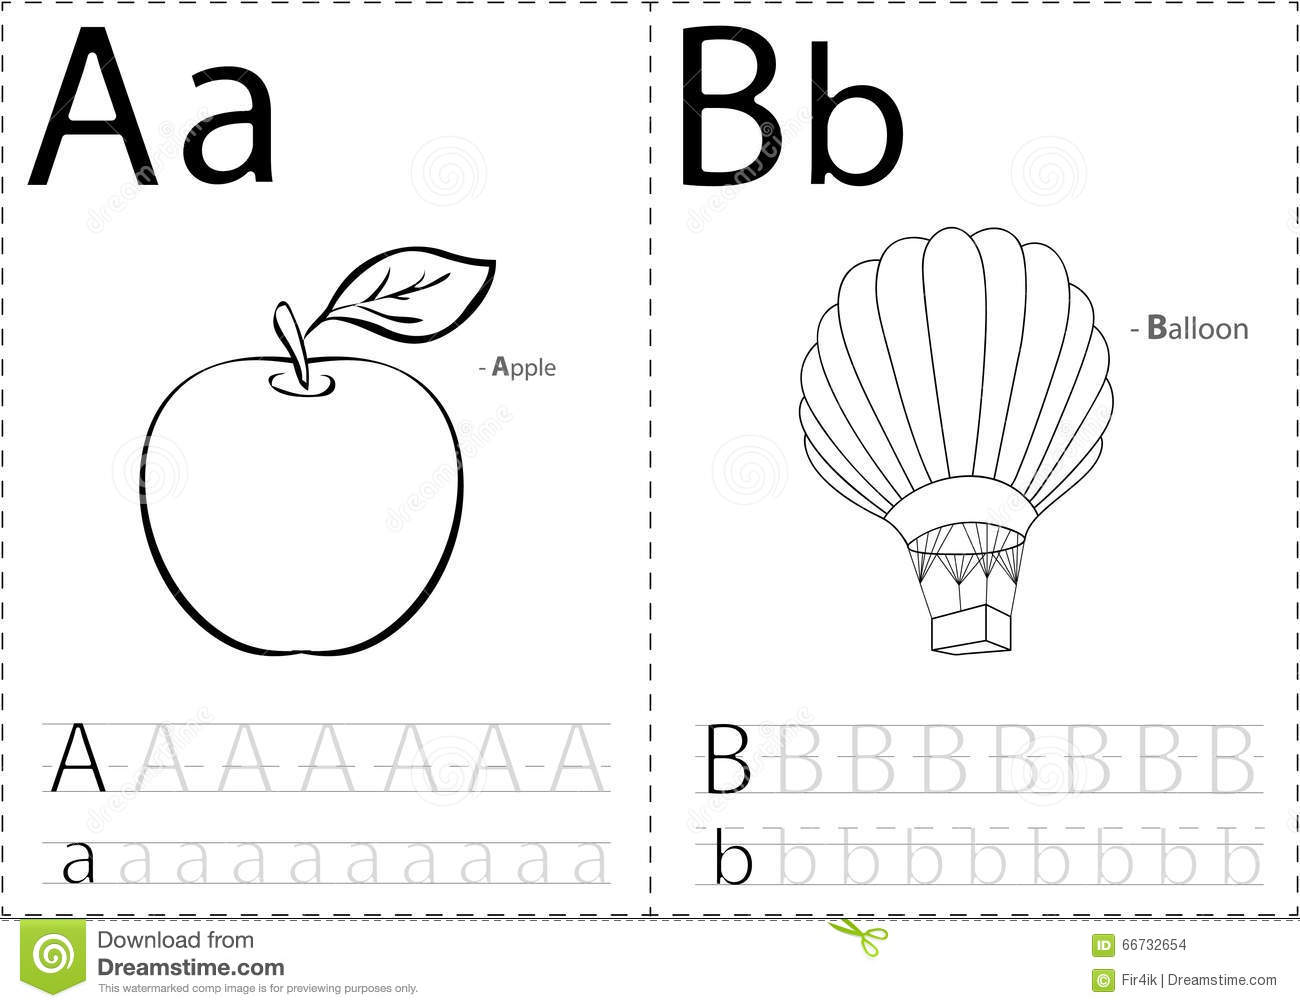 Cartoon Apple And Balloon Alphabet Tracing Worksheet